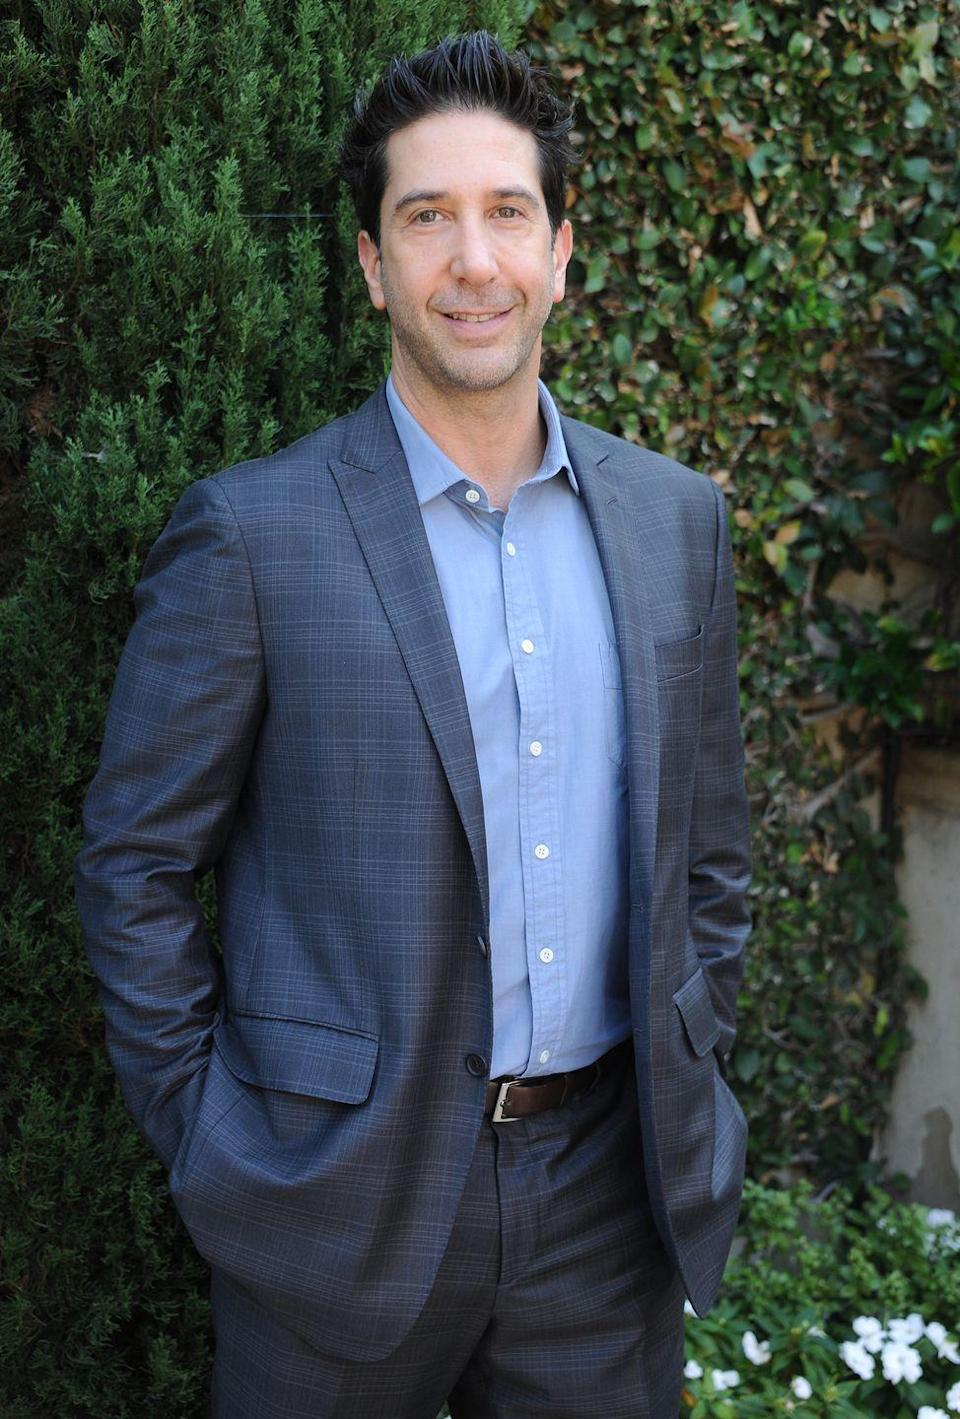 <p>The actor found success with Disney's animated <em>Madagascar</em> franchise. He also earned an Emmy nomination for his performance as Robert Kardashian in <em>American Crime Story</em> and appeared in the reboot of <em>Will and Grace</em>. Next up, you can see him in <em>The Laundromat </em>with Meryl Streep.</p>